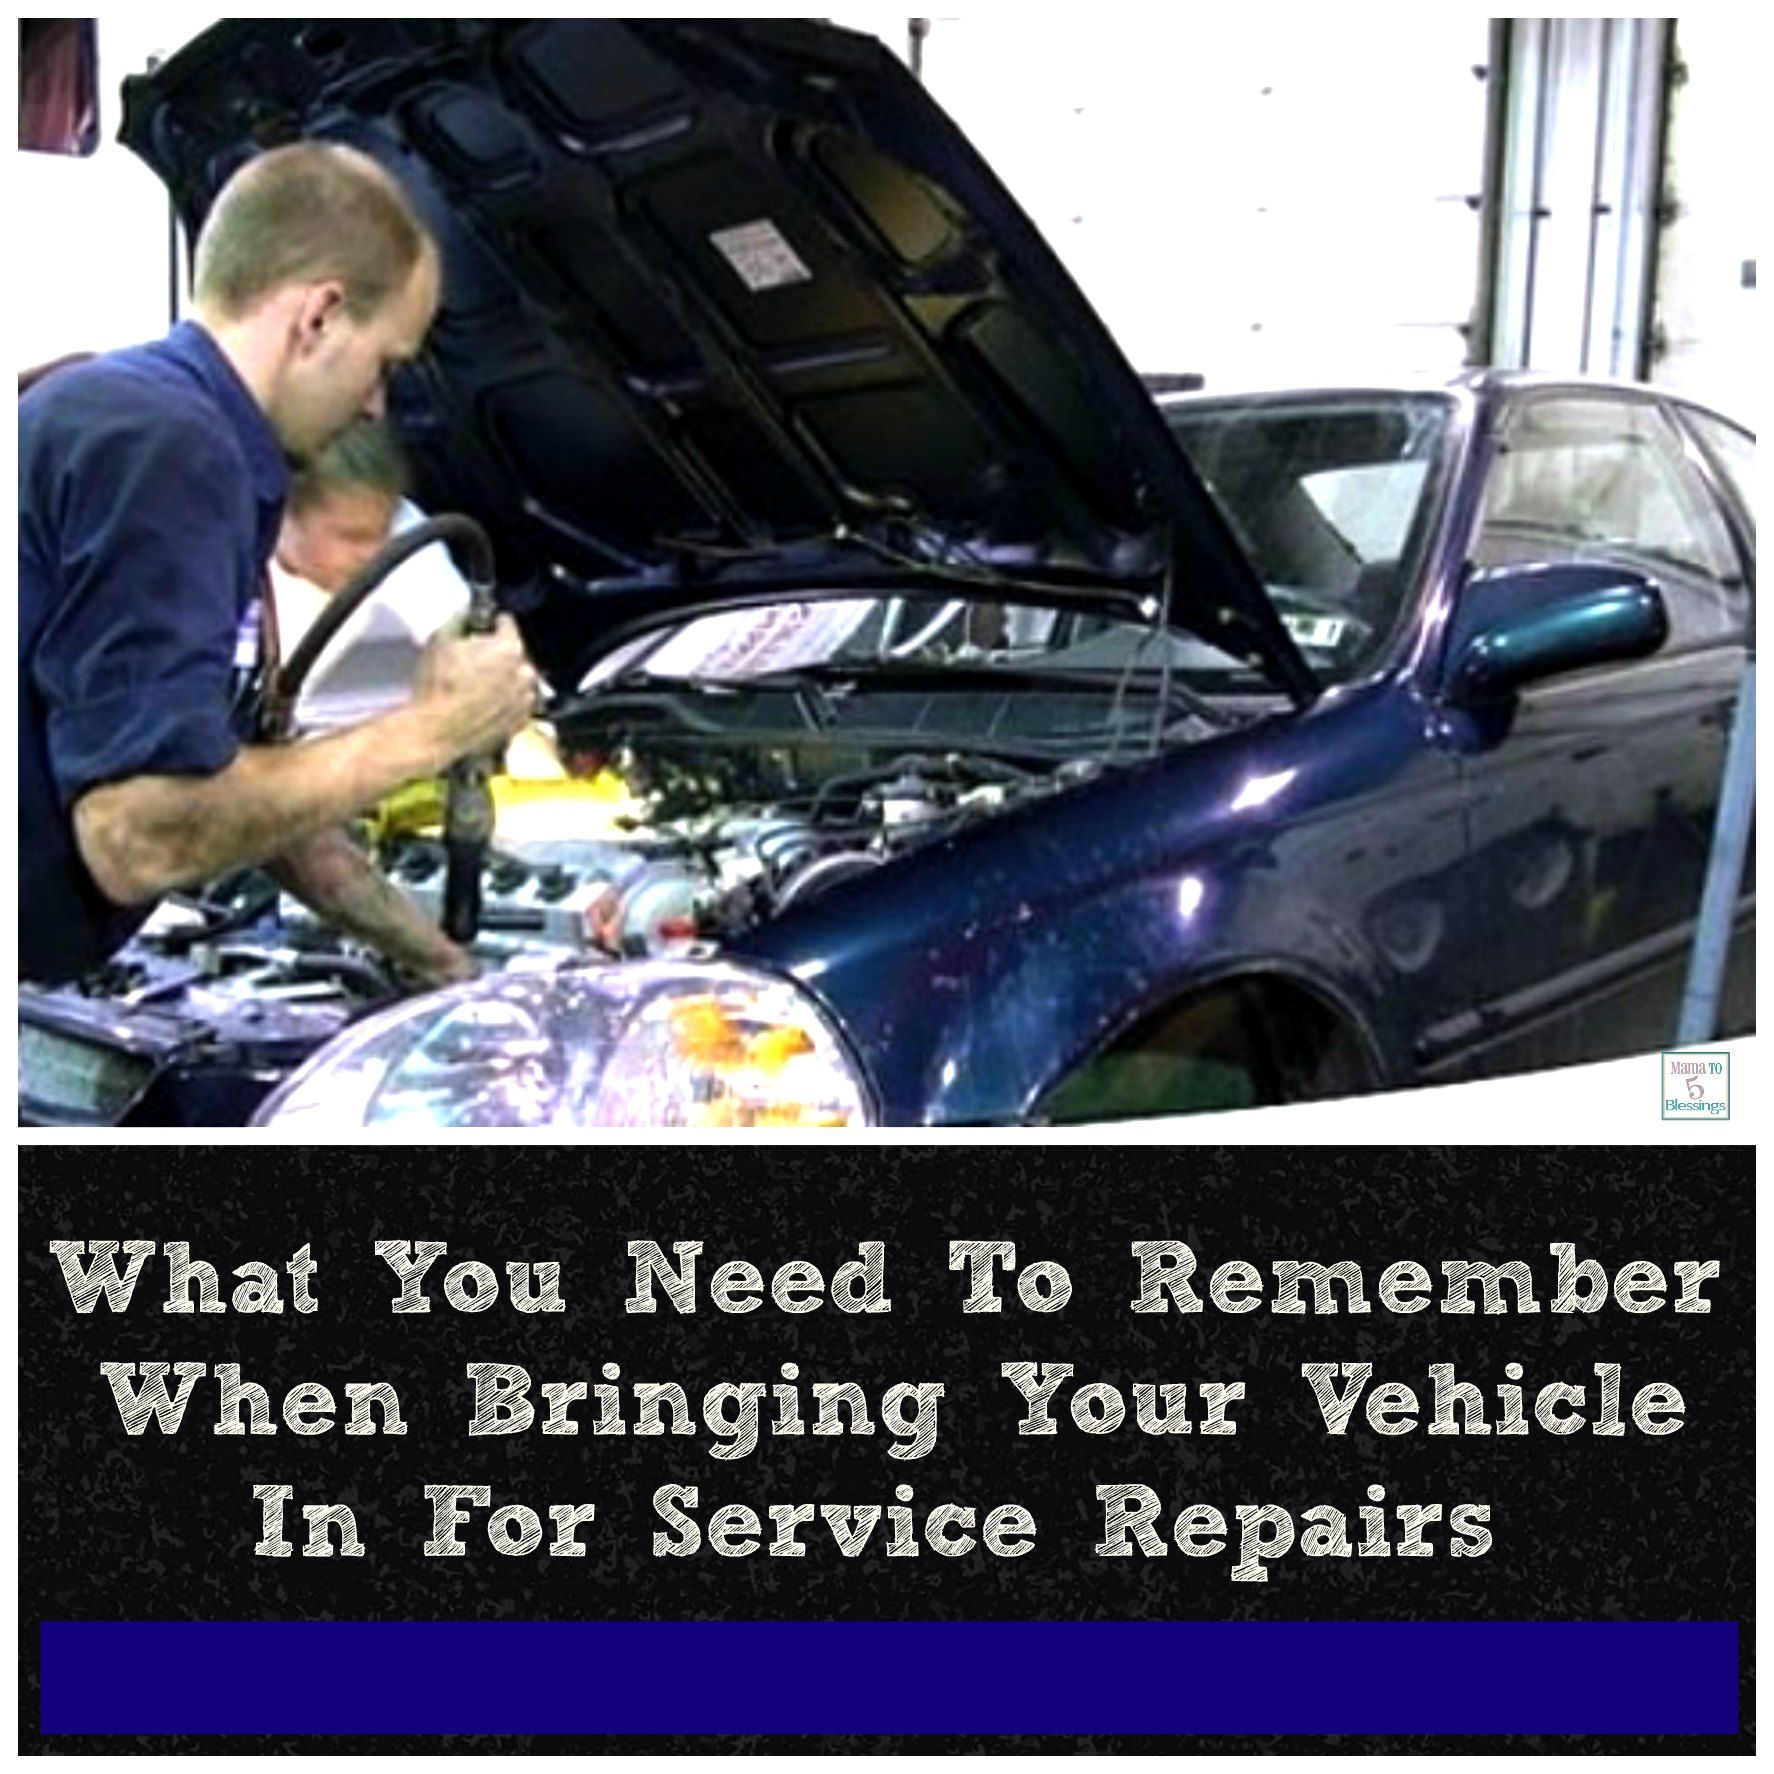 How Much Does It Cost To Get Your Car Serviced At Ford